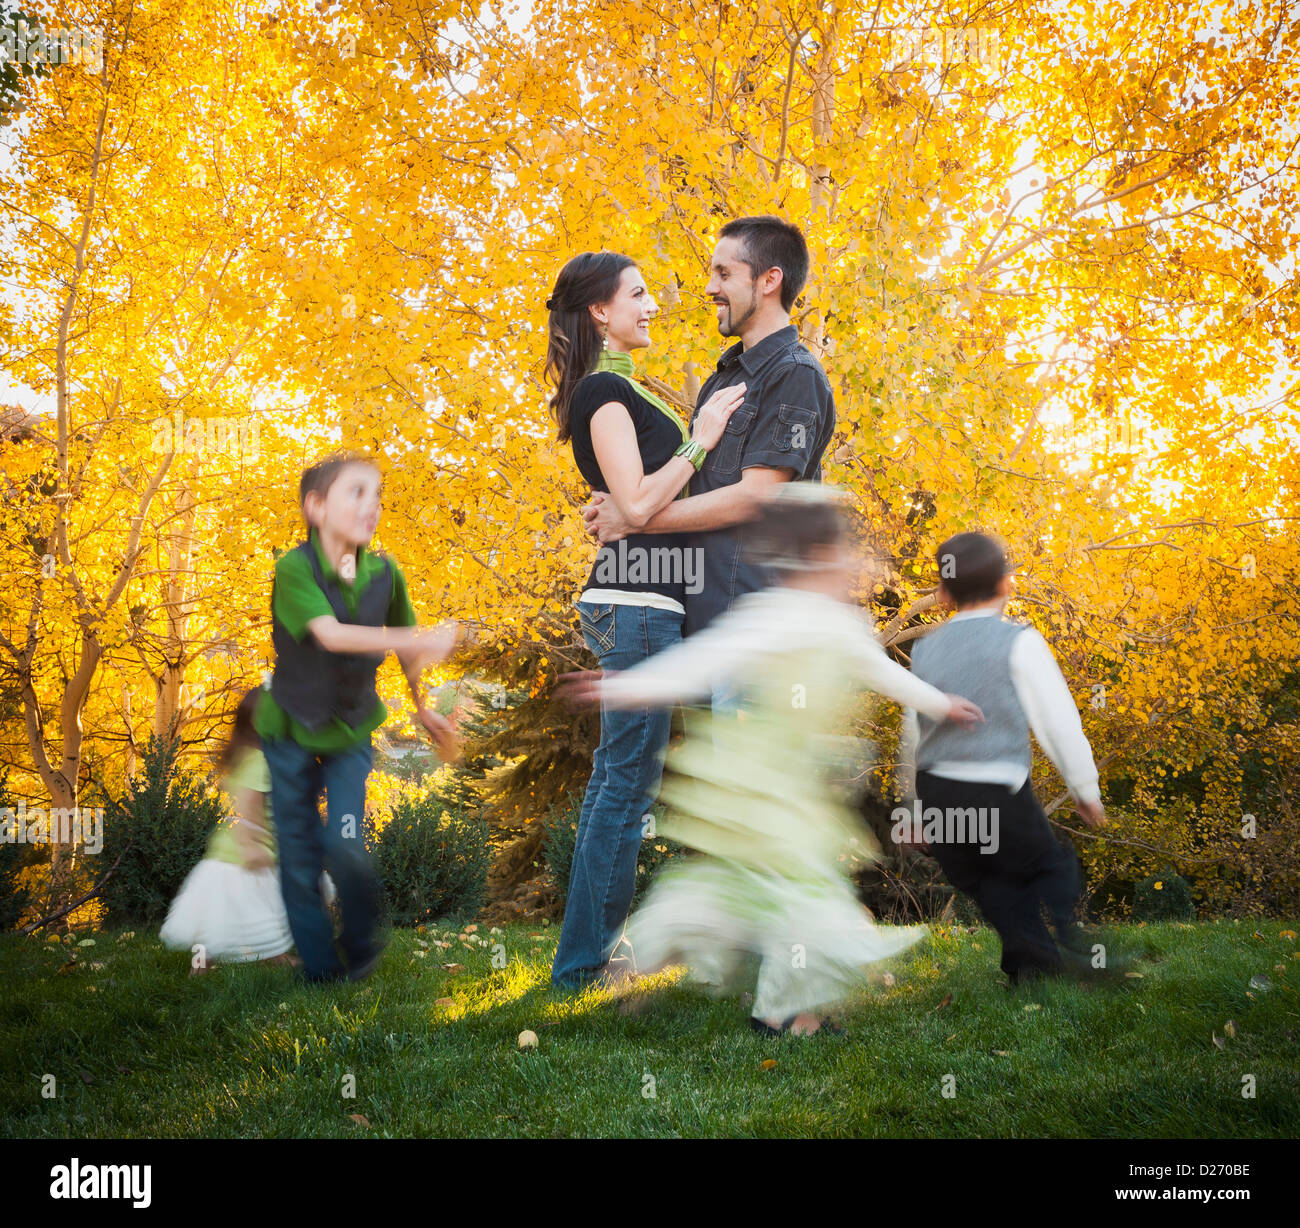 USA, Utah, Bountiful, Family with children (2-3, 4-5, 6-7, 8-9) dancing in garden at autumn - Stock Image